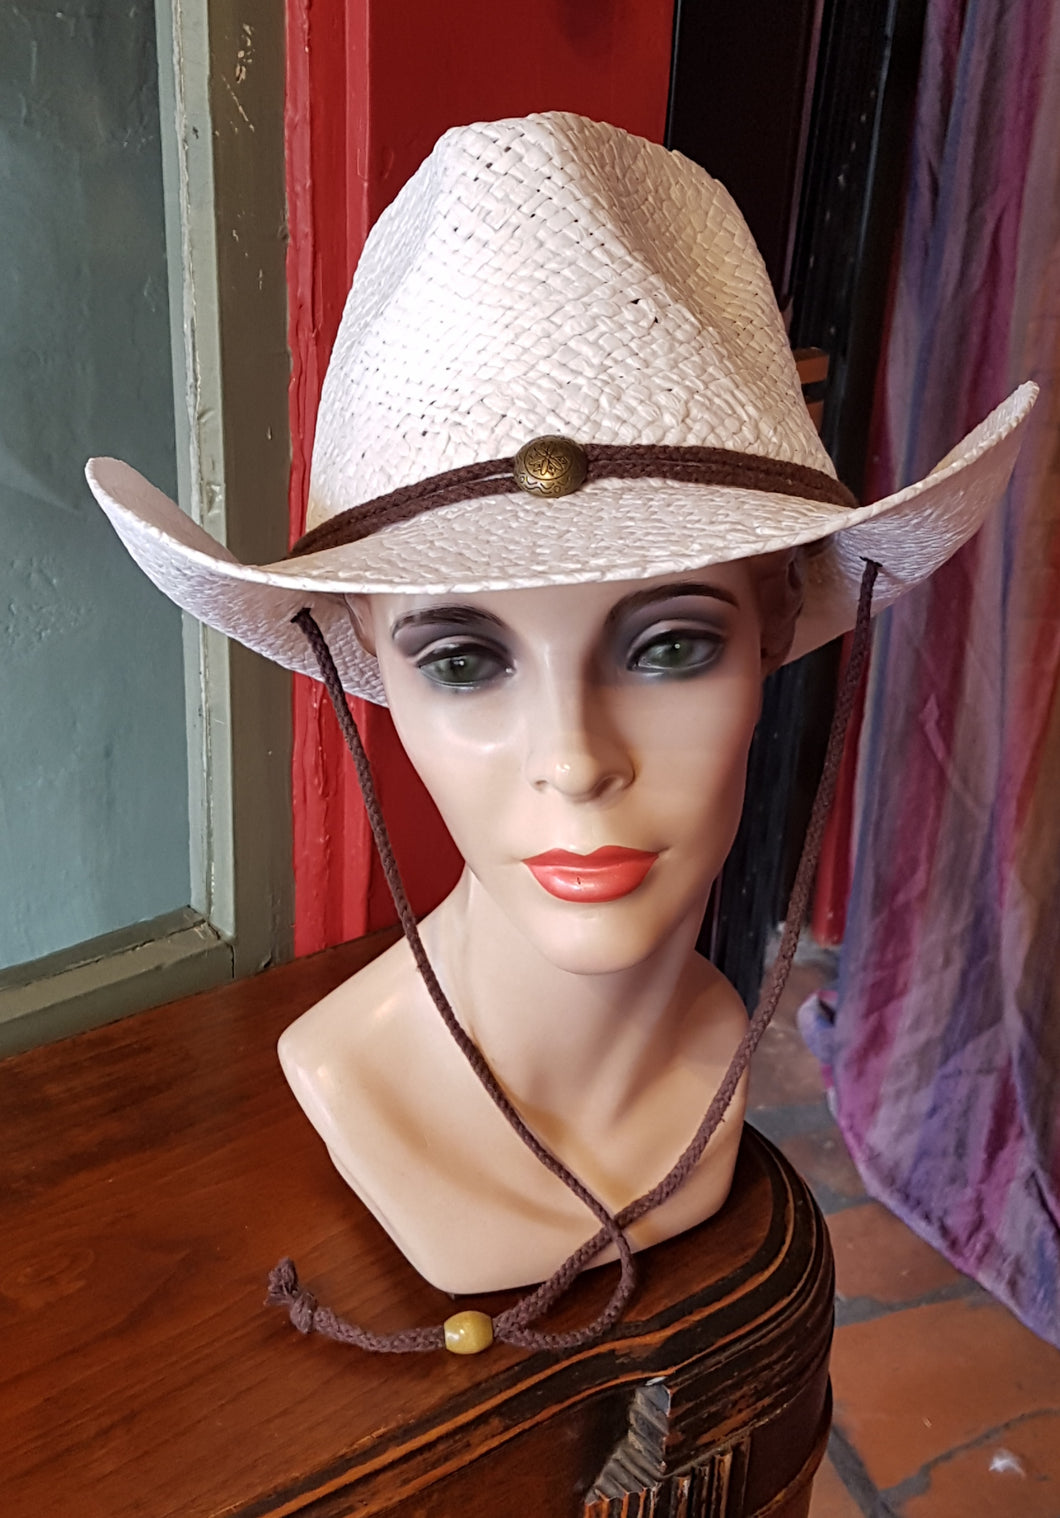 Straw Cowboy/Cowgirl Hat, White with brown cord band and chin strap, metal detail